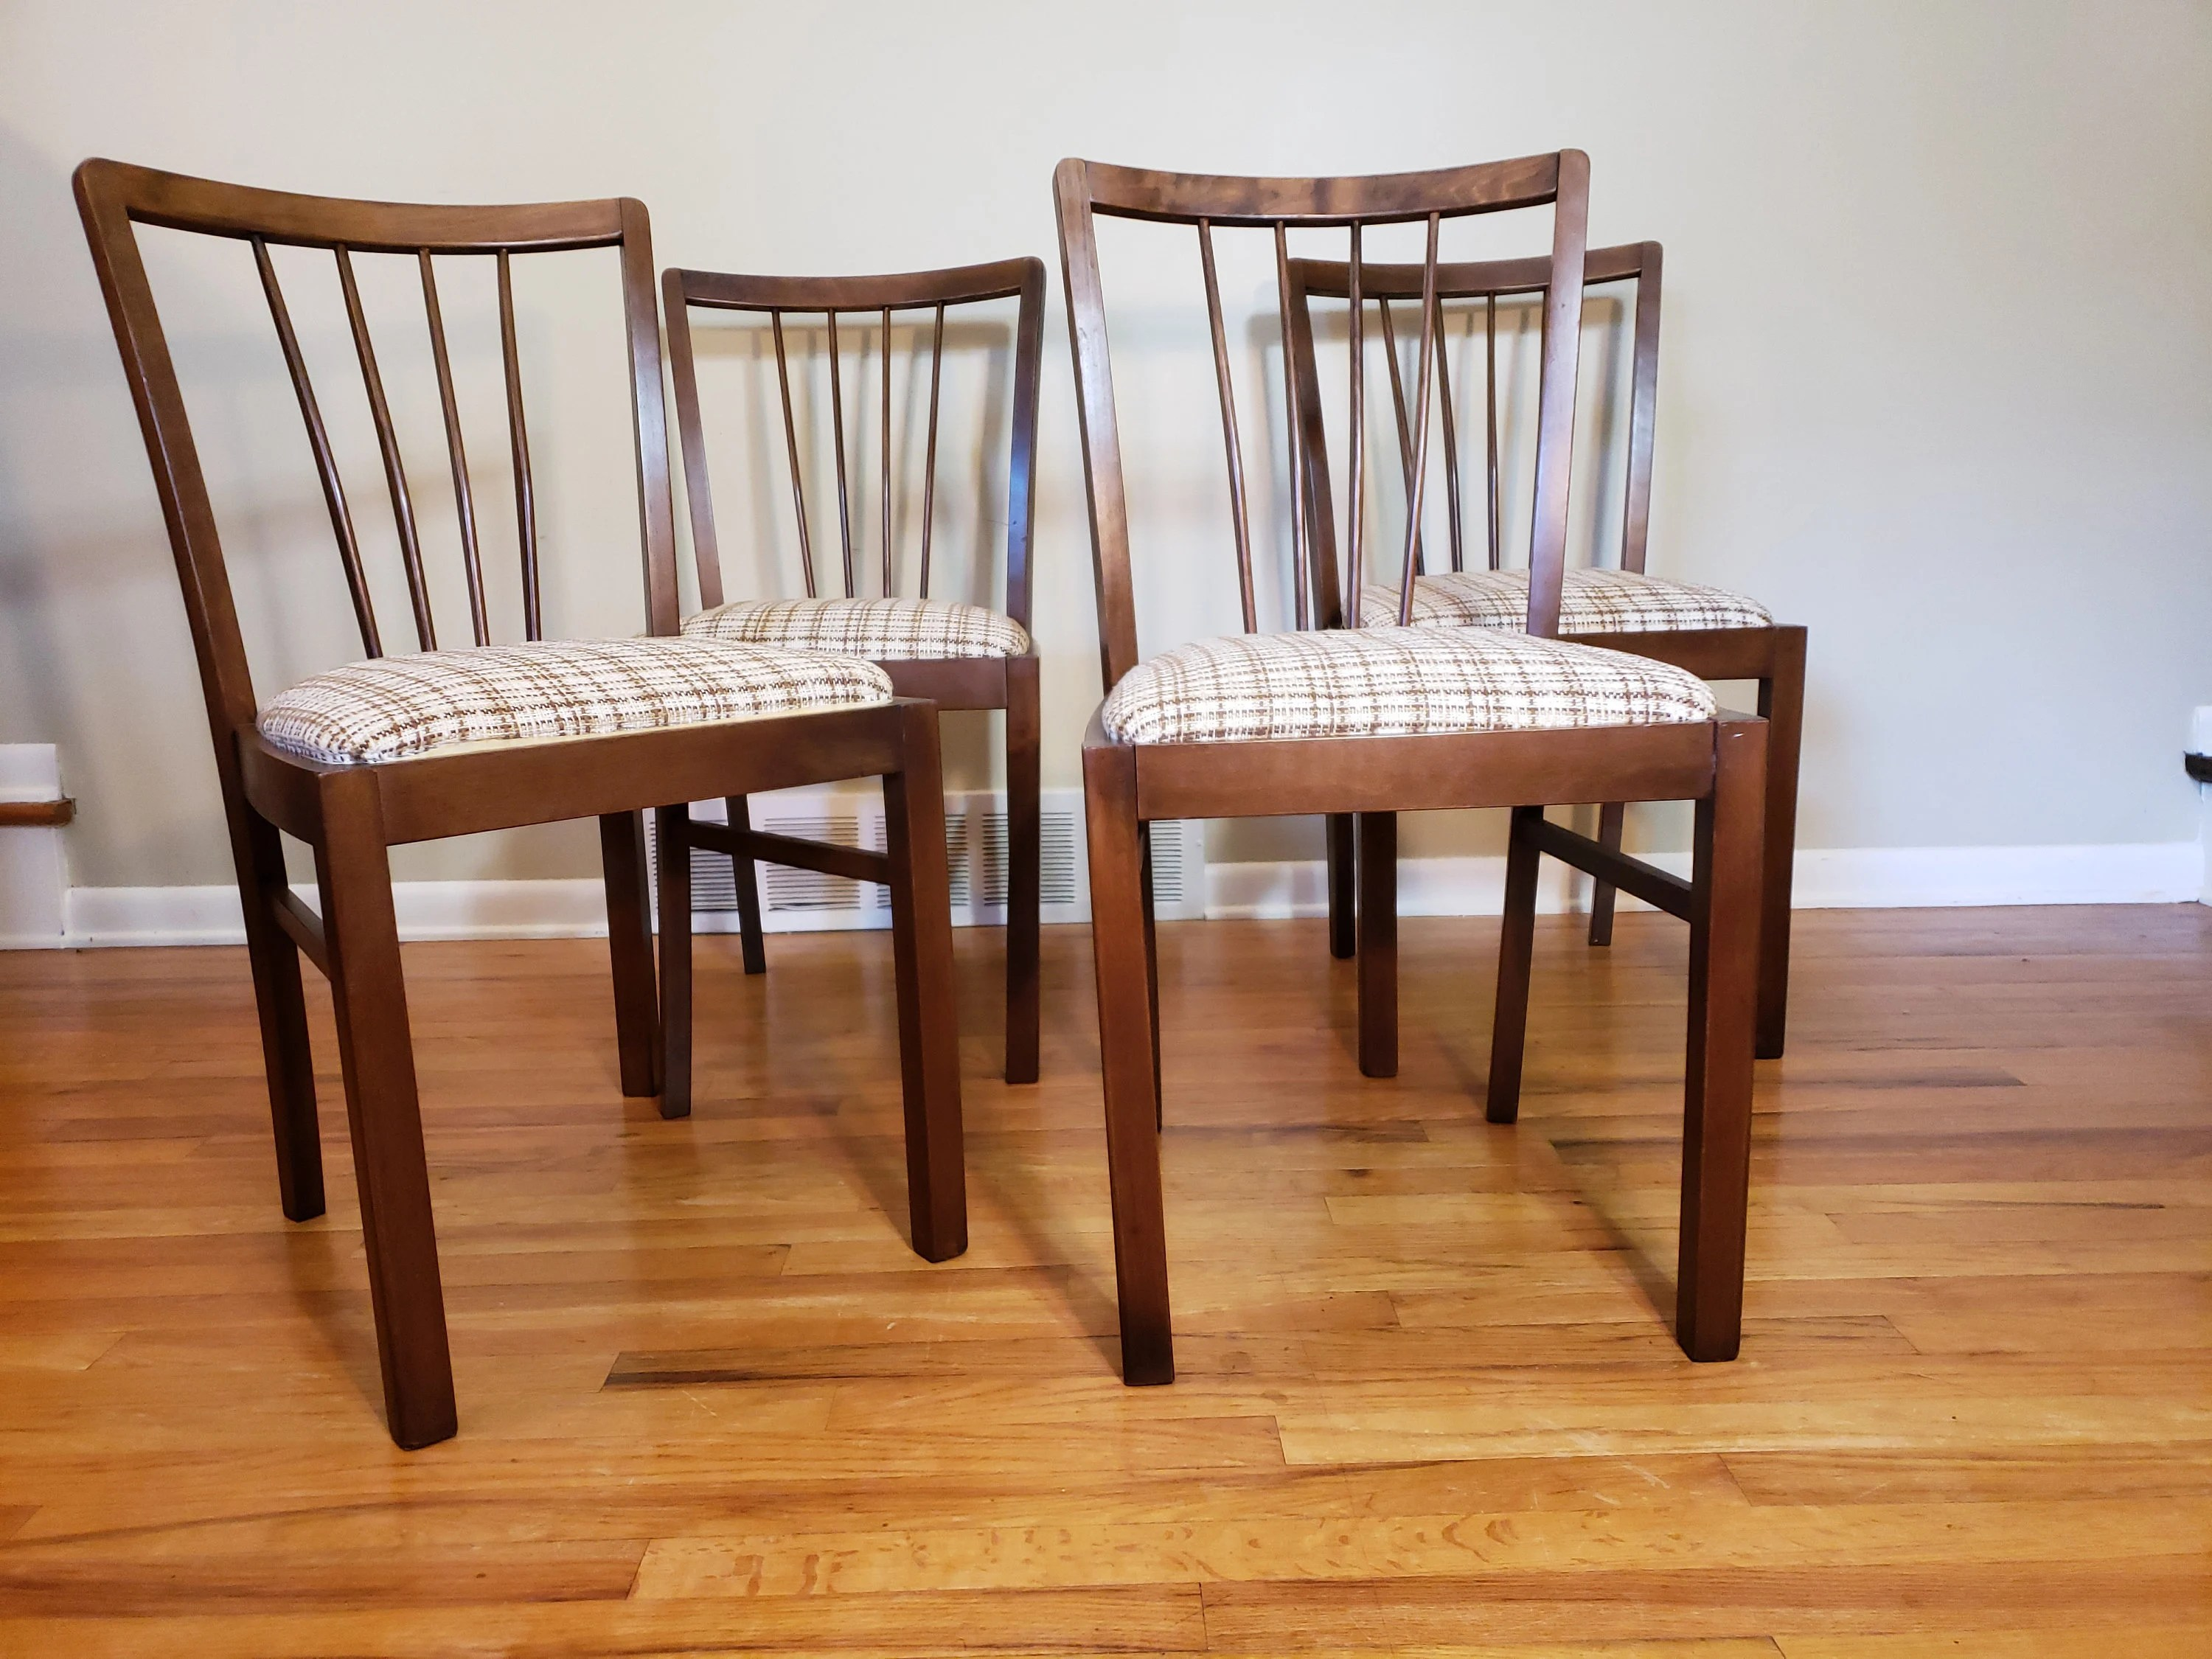 Danish Modern Dining Chairs For Sale Mid Century Danish Modern Set Of Four Dining Chairs Made In West Germany